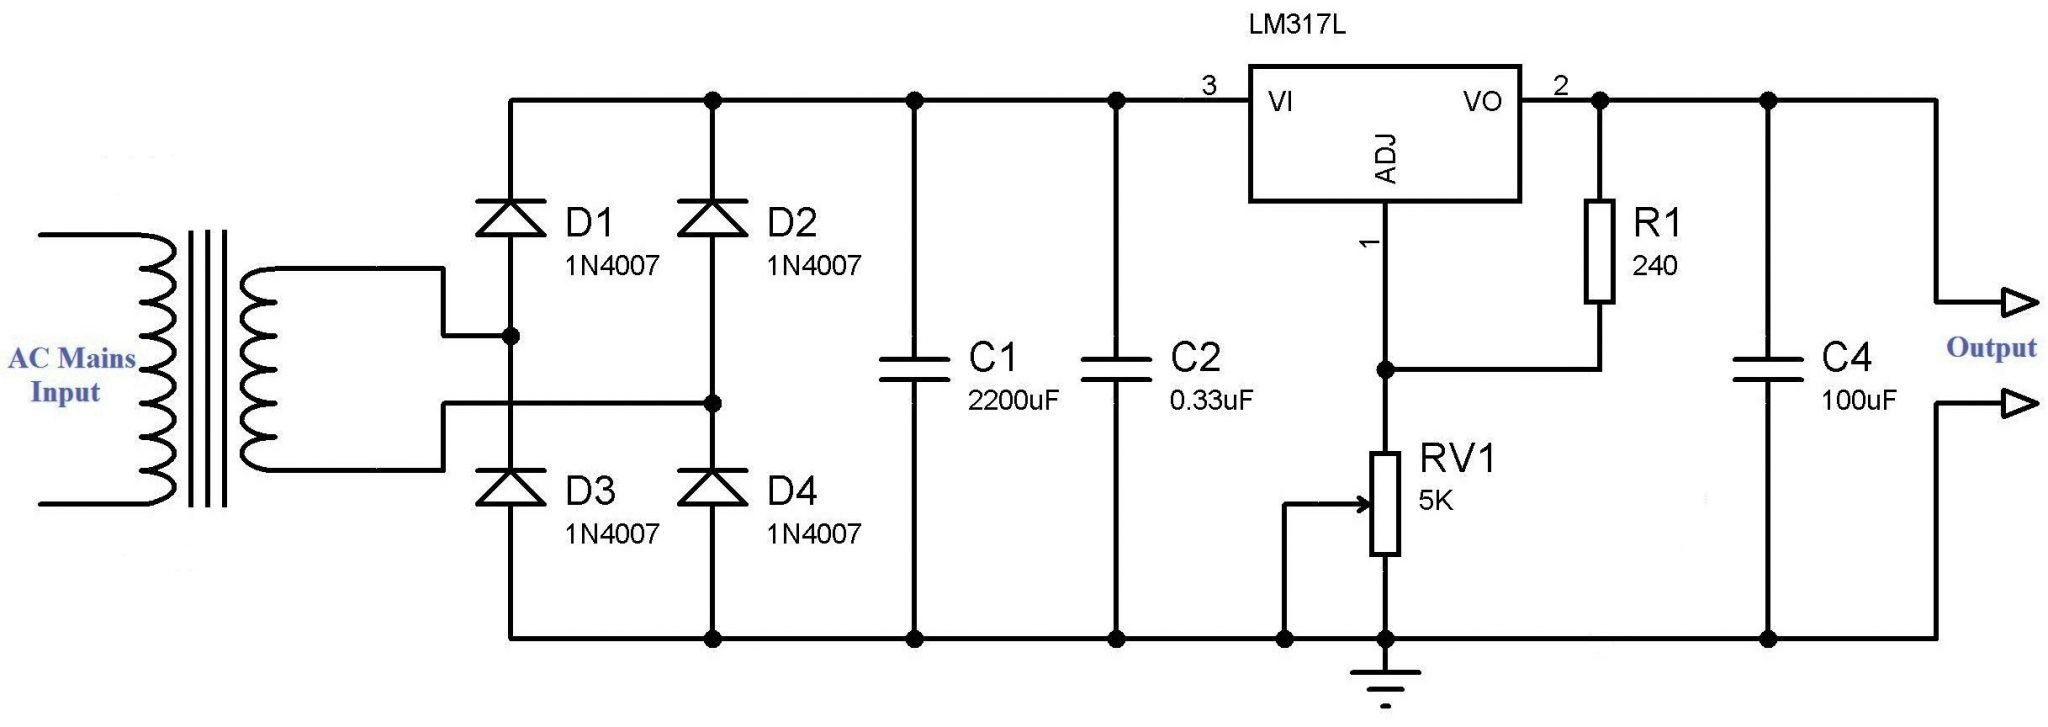 variable power supply using lm317 voltage regulatorsimple variable power supply using lm317